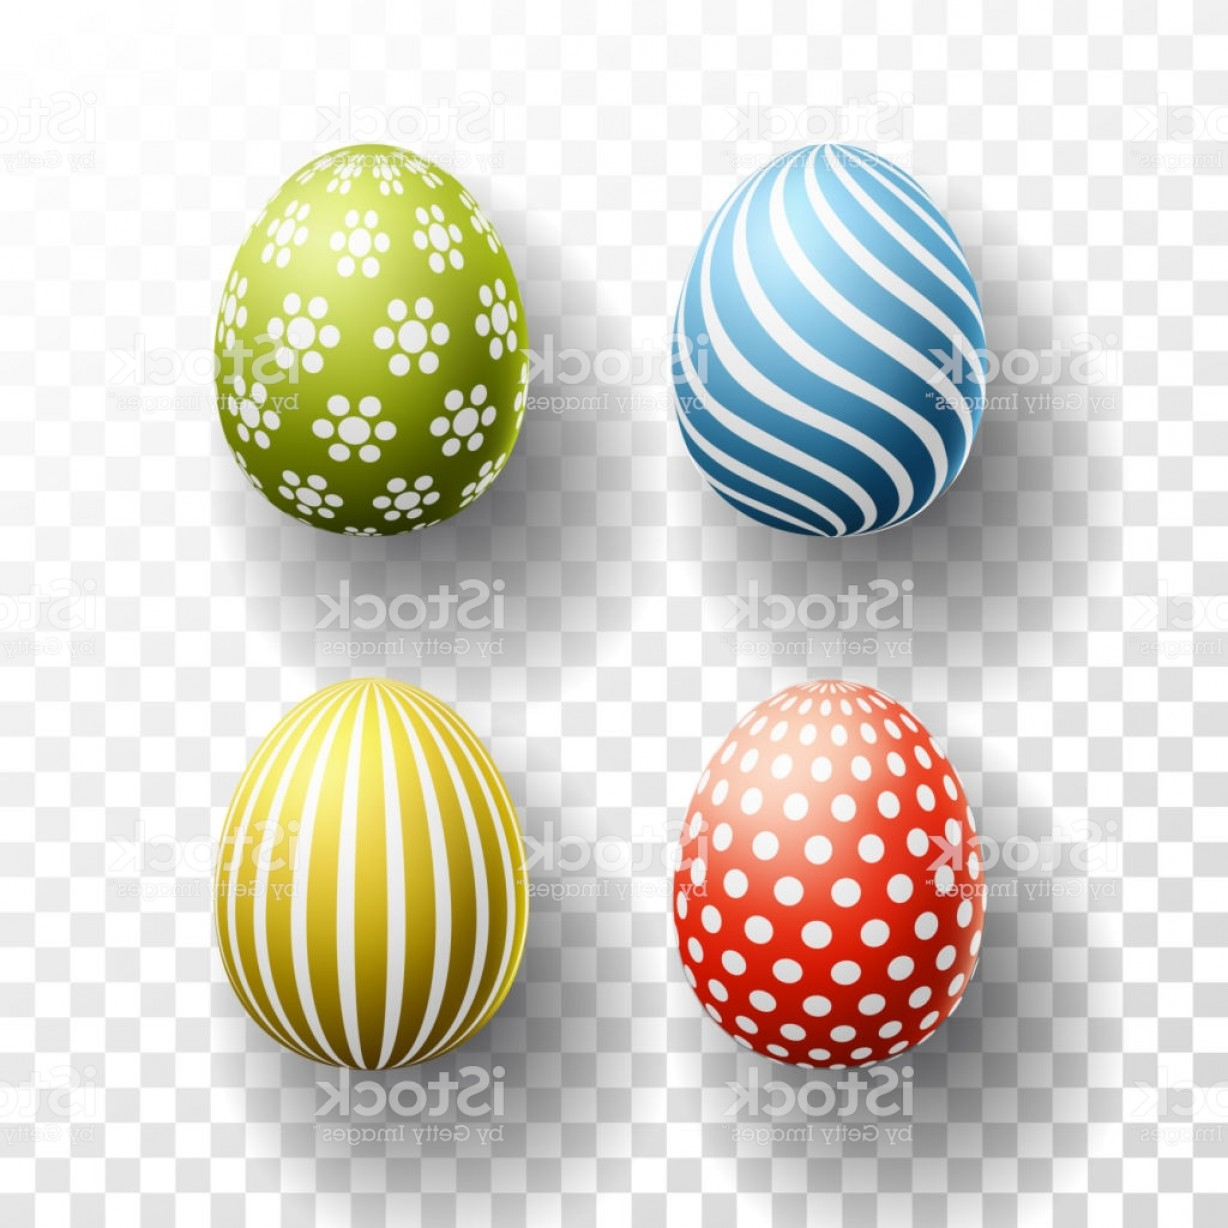 Easter Vector Art No Background: Happy Easter Colored Eggs Set With Shadows On Transparent Background Vector Gm